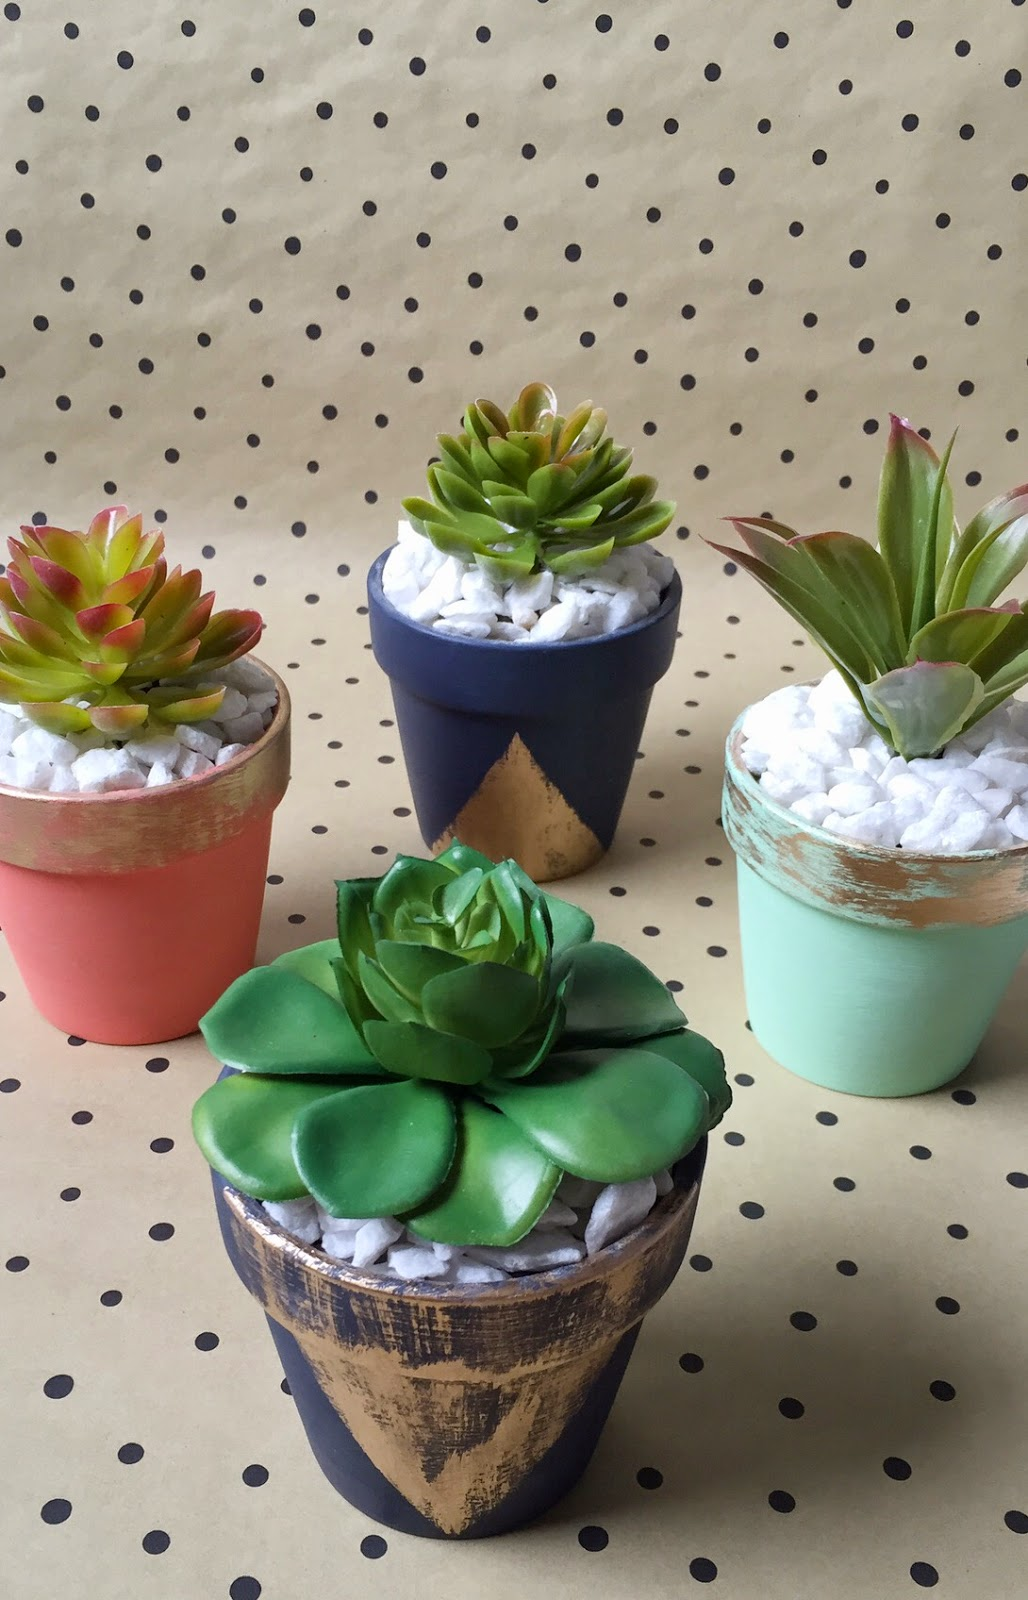 Home Made Austin: Hopping into Spring with Colorful Succulents + ...